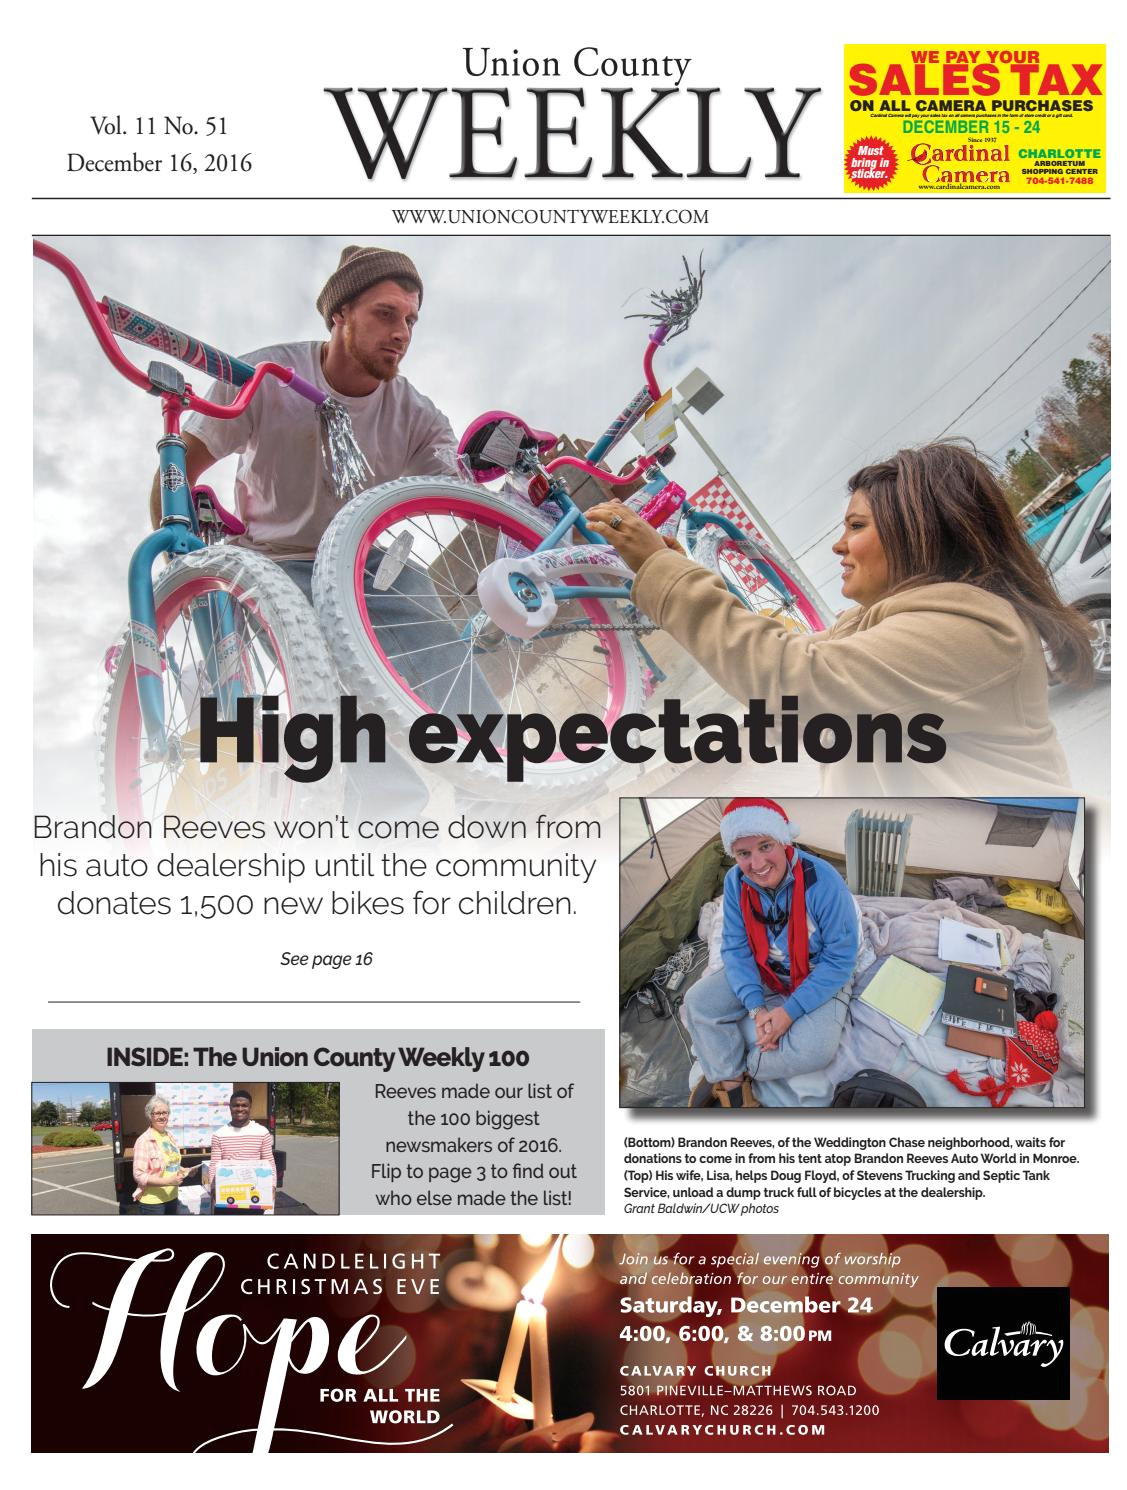 Junk Hauling Services Raleigh Nc Union County Weekly by Carolina Weekly issuu